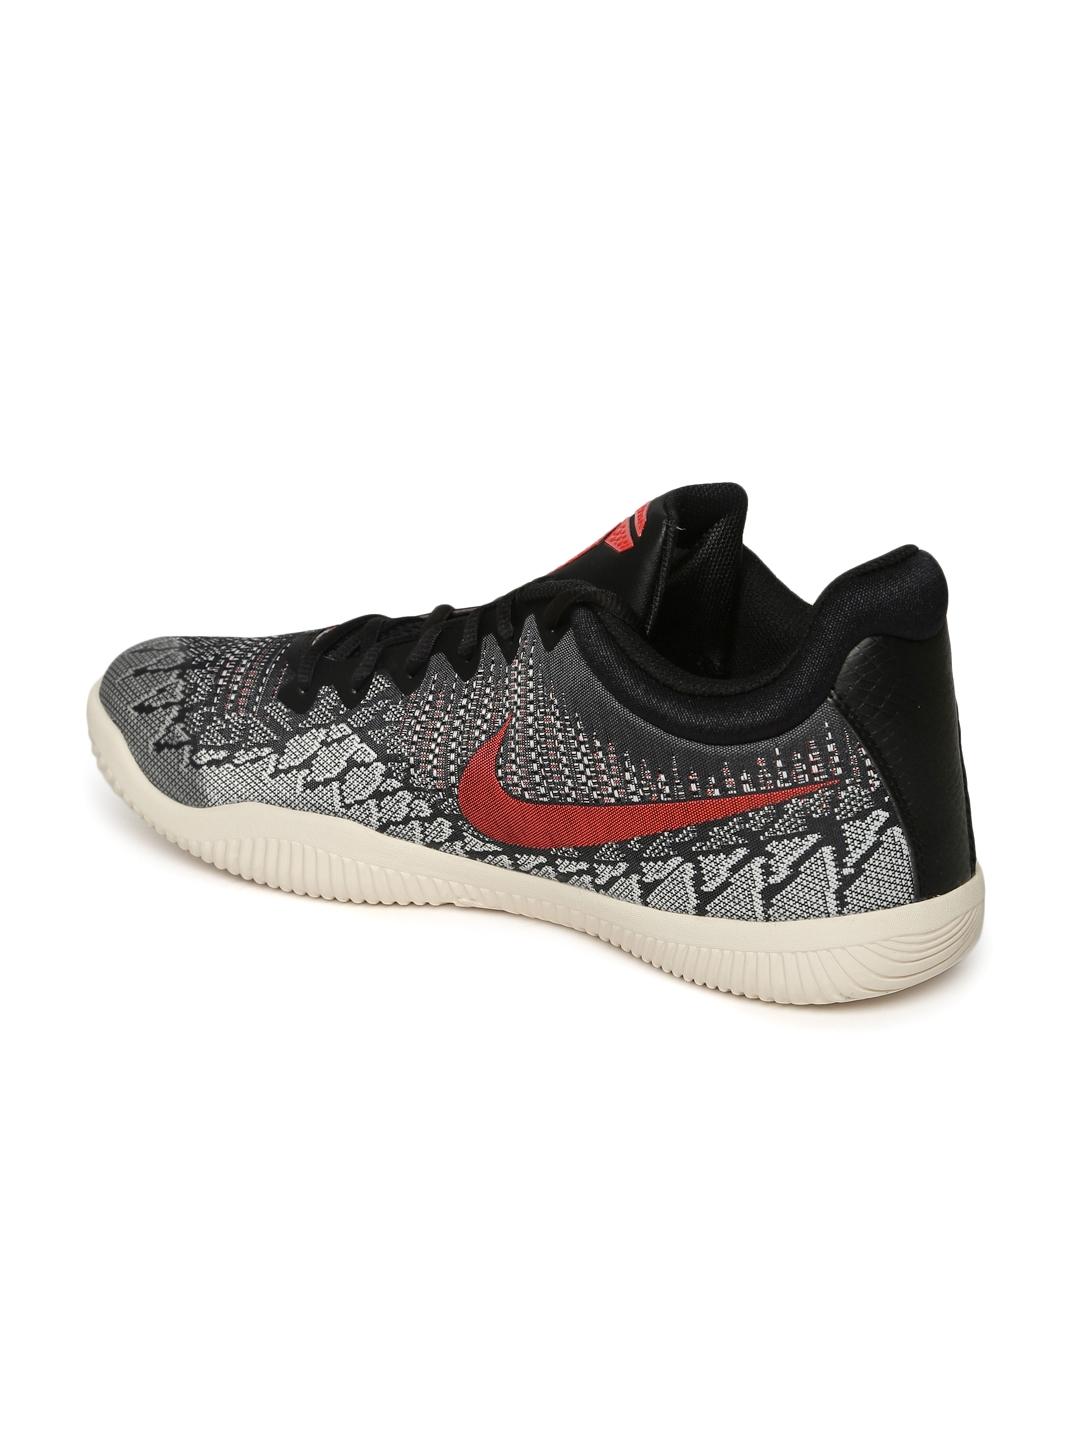 7c5229ad88cd Buy Nike Men Black Mamba Rage Basketball Shoes - Sports Shoes for ...